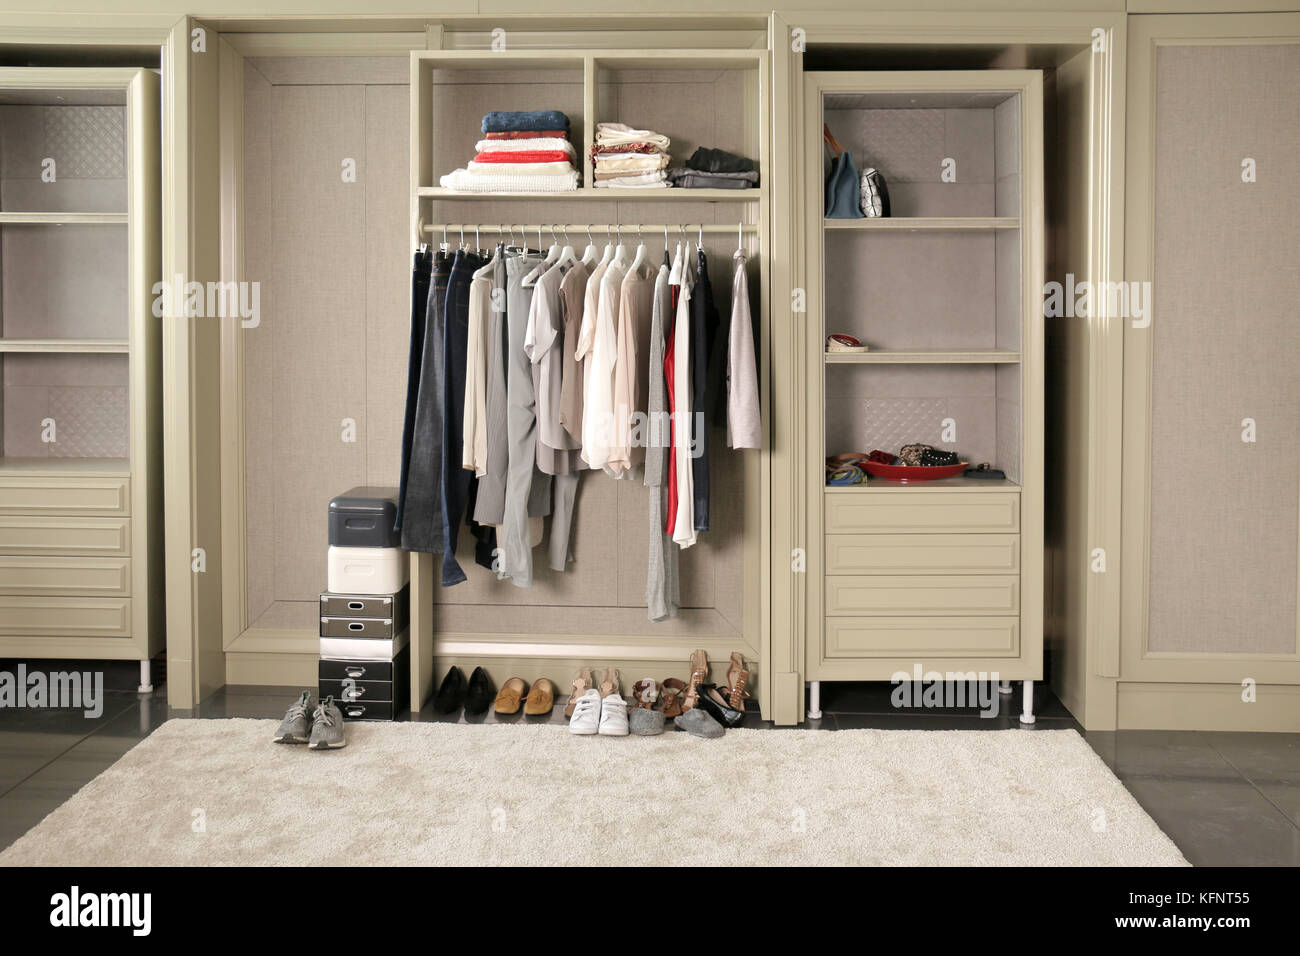 Some Wardrobe Hanging Or Put On The Shelf In The Open Closet Room